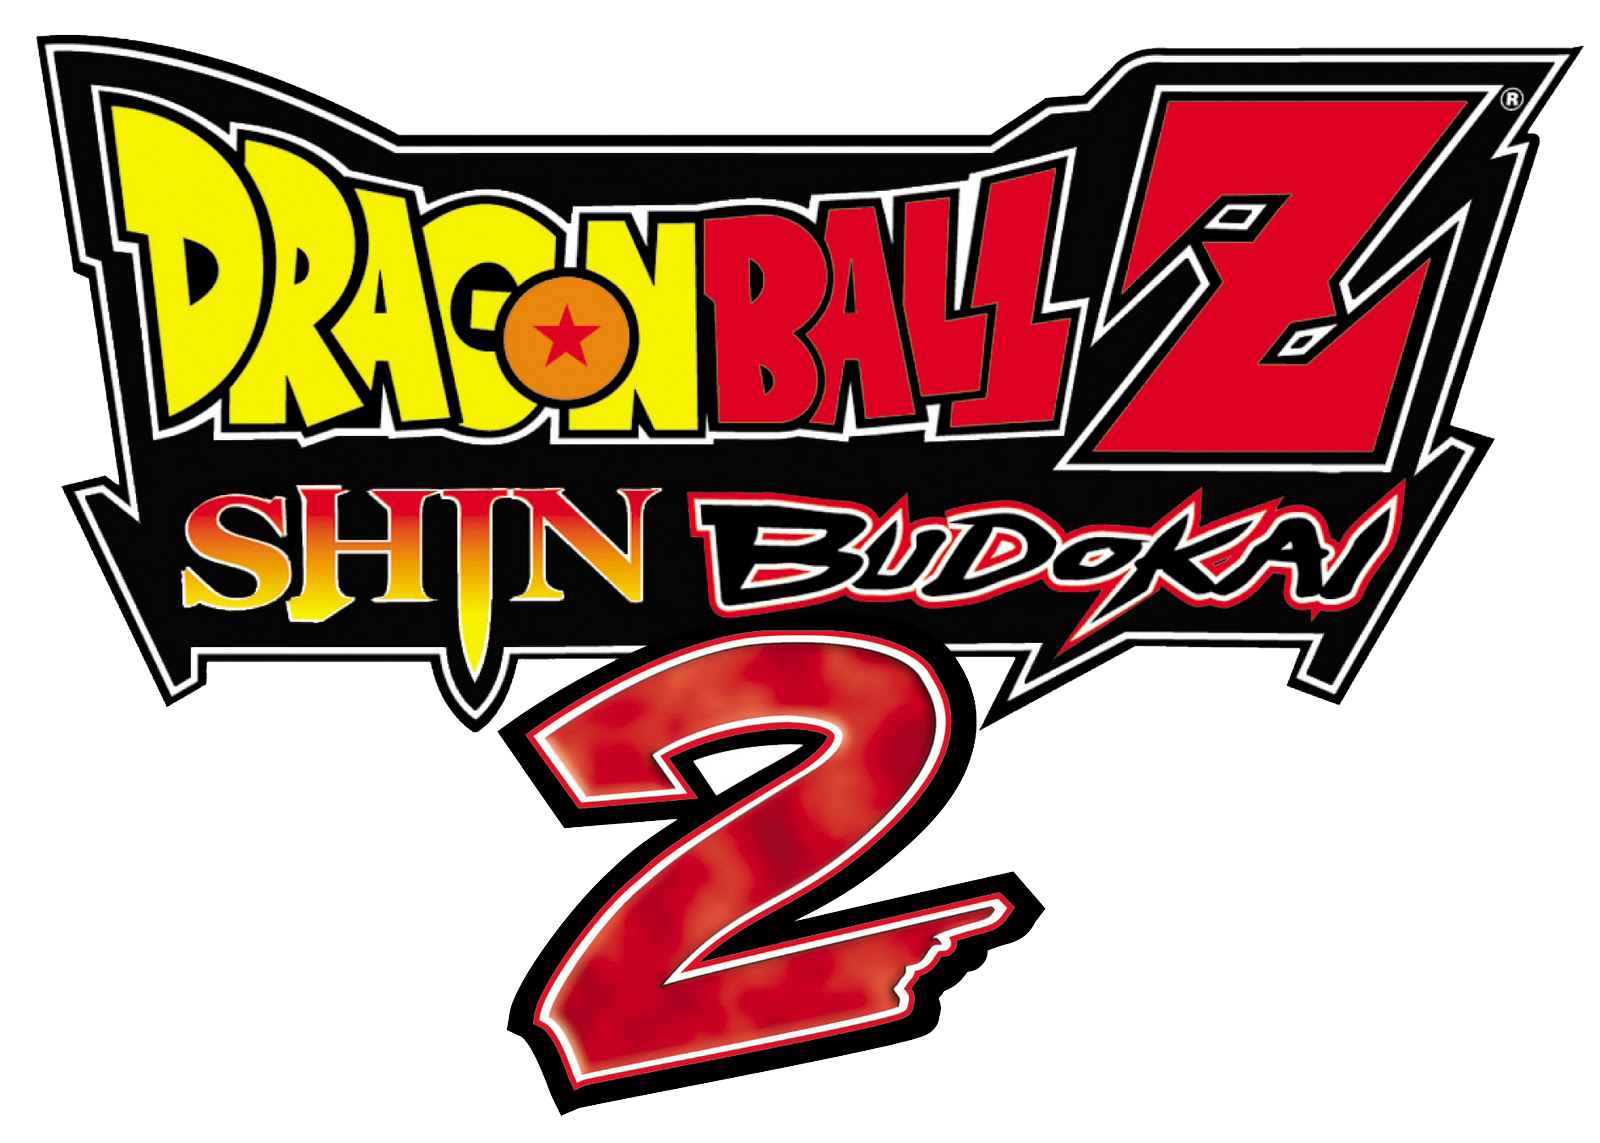 Dragon Ball Z: Shin Budokai 2 - Dragon Ball Wiki